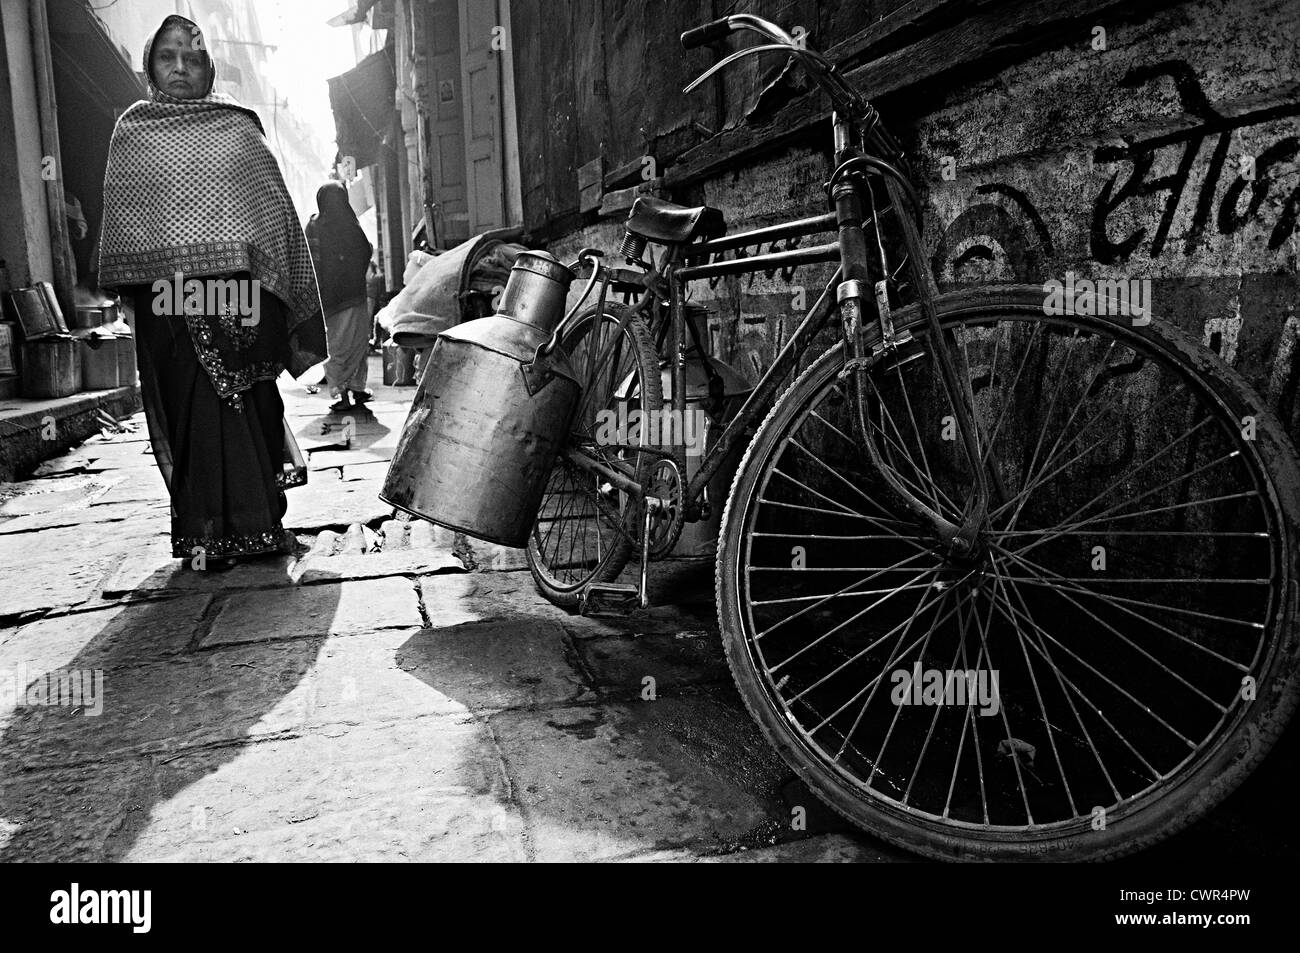 Milkman´s bicycle parked in an alley and woman coming. Varanasi,Uttar Pradesh, India - Stock Image